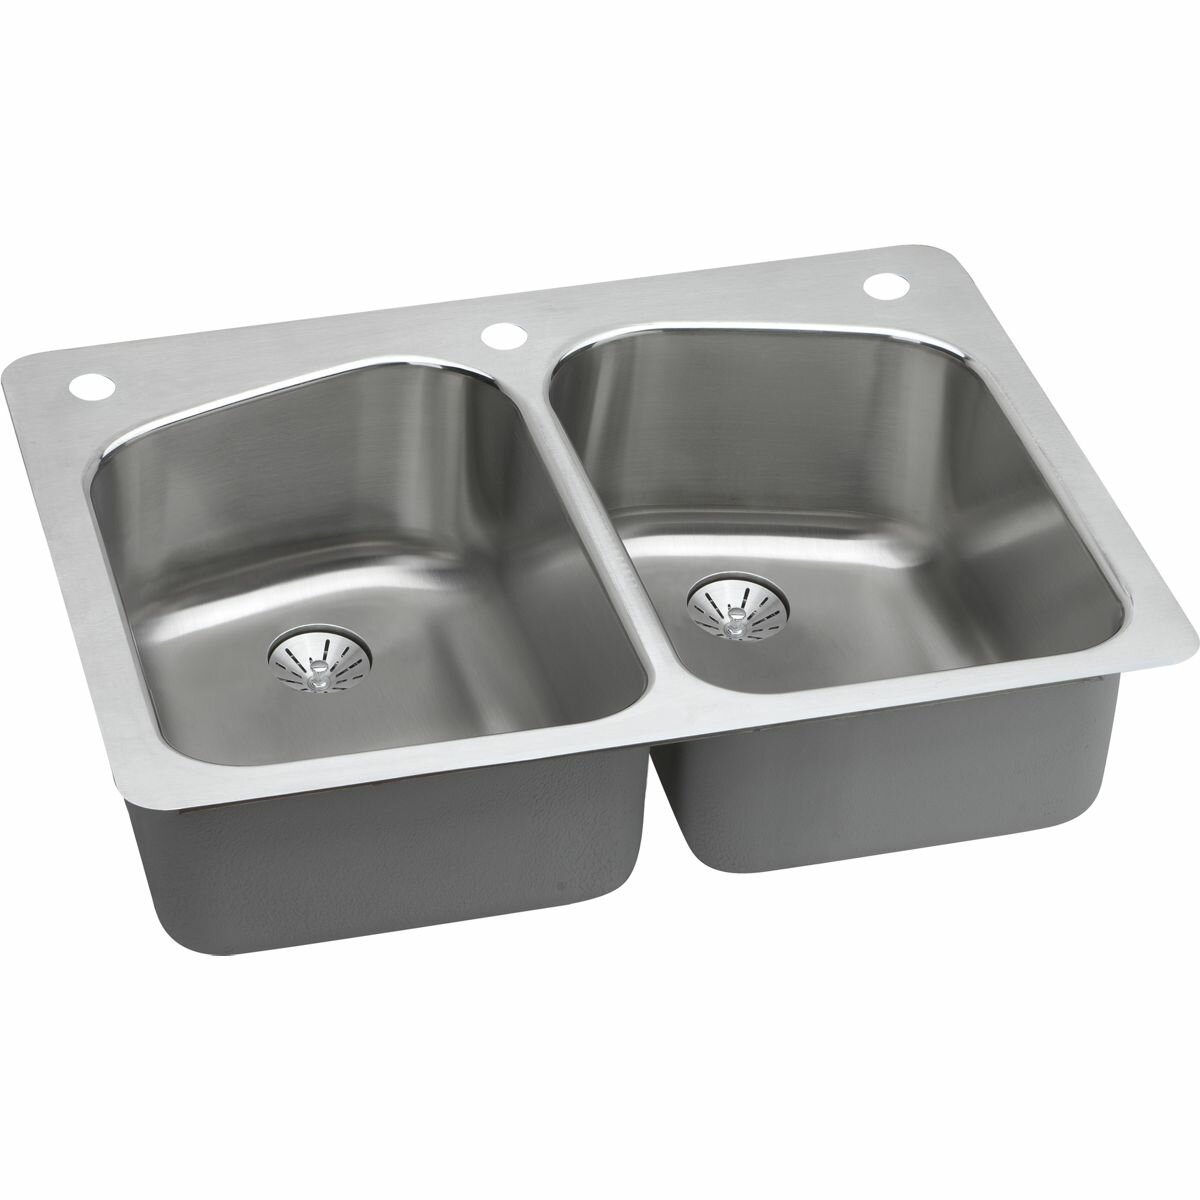 dual mount stainless steel kitchen sink elkay harmony 33 quot x 22 quot stainless steel equal bowl 9628